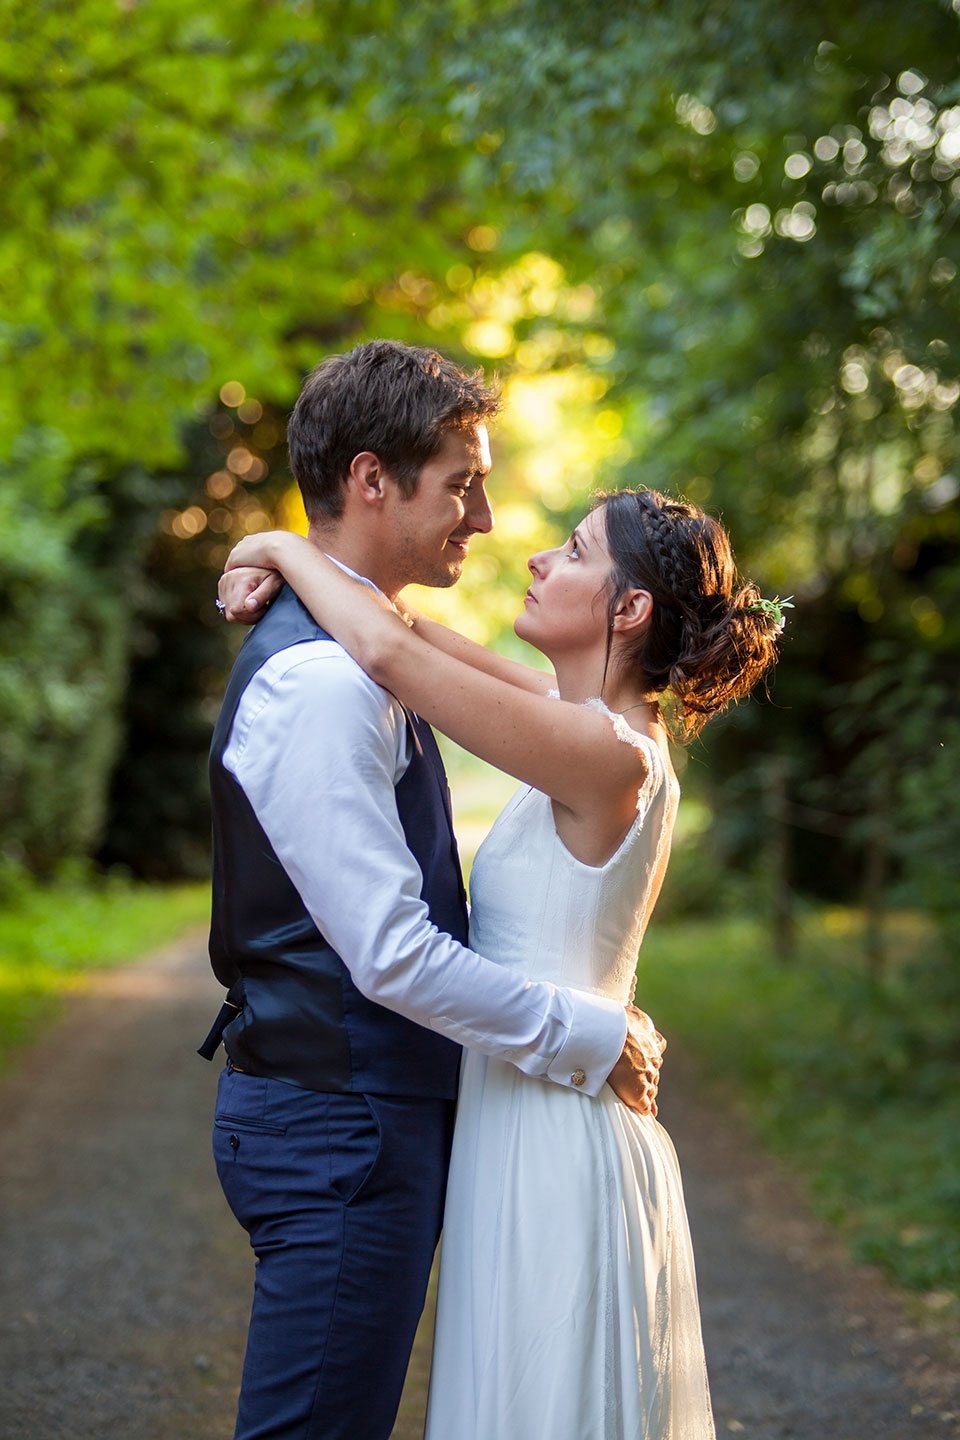 particuliers-evenements-mariage-oui-elise&quentin-73